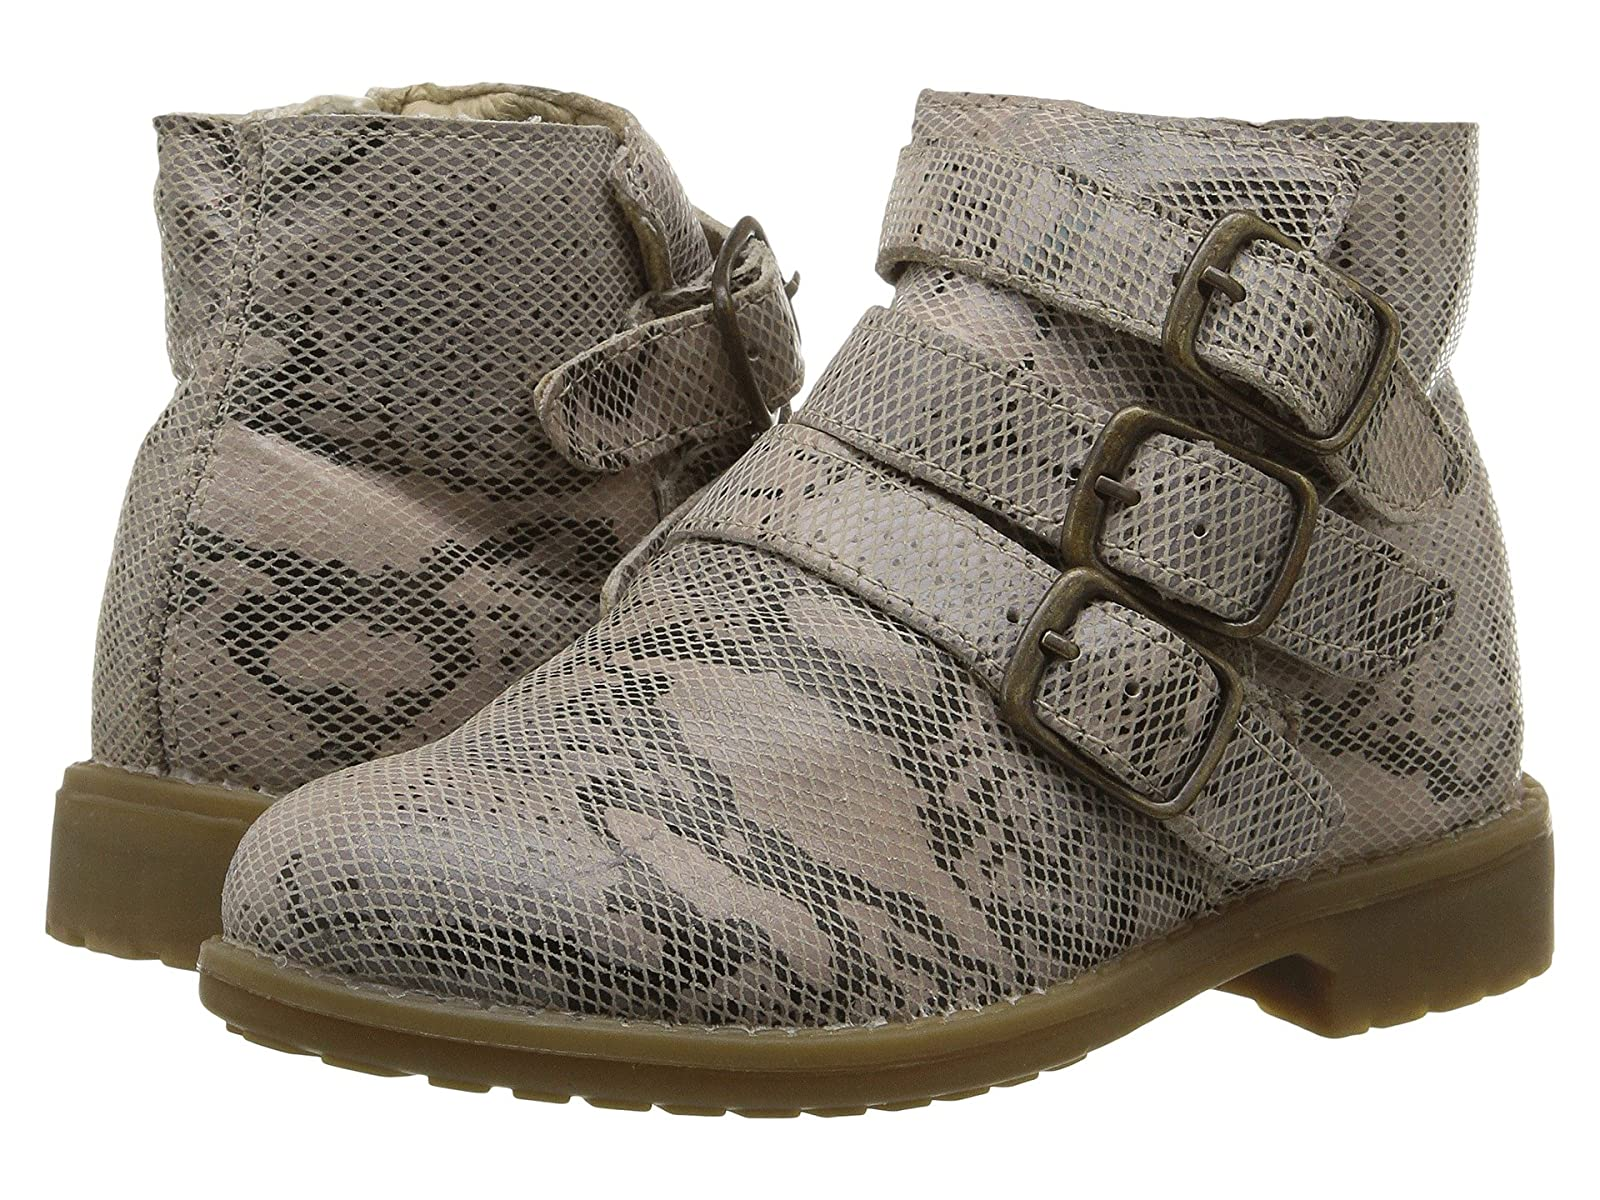 Old Soles Buckle Up (Toddler/Little Kid)Cheap and distinctive eye-catching shoes